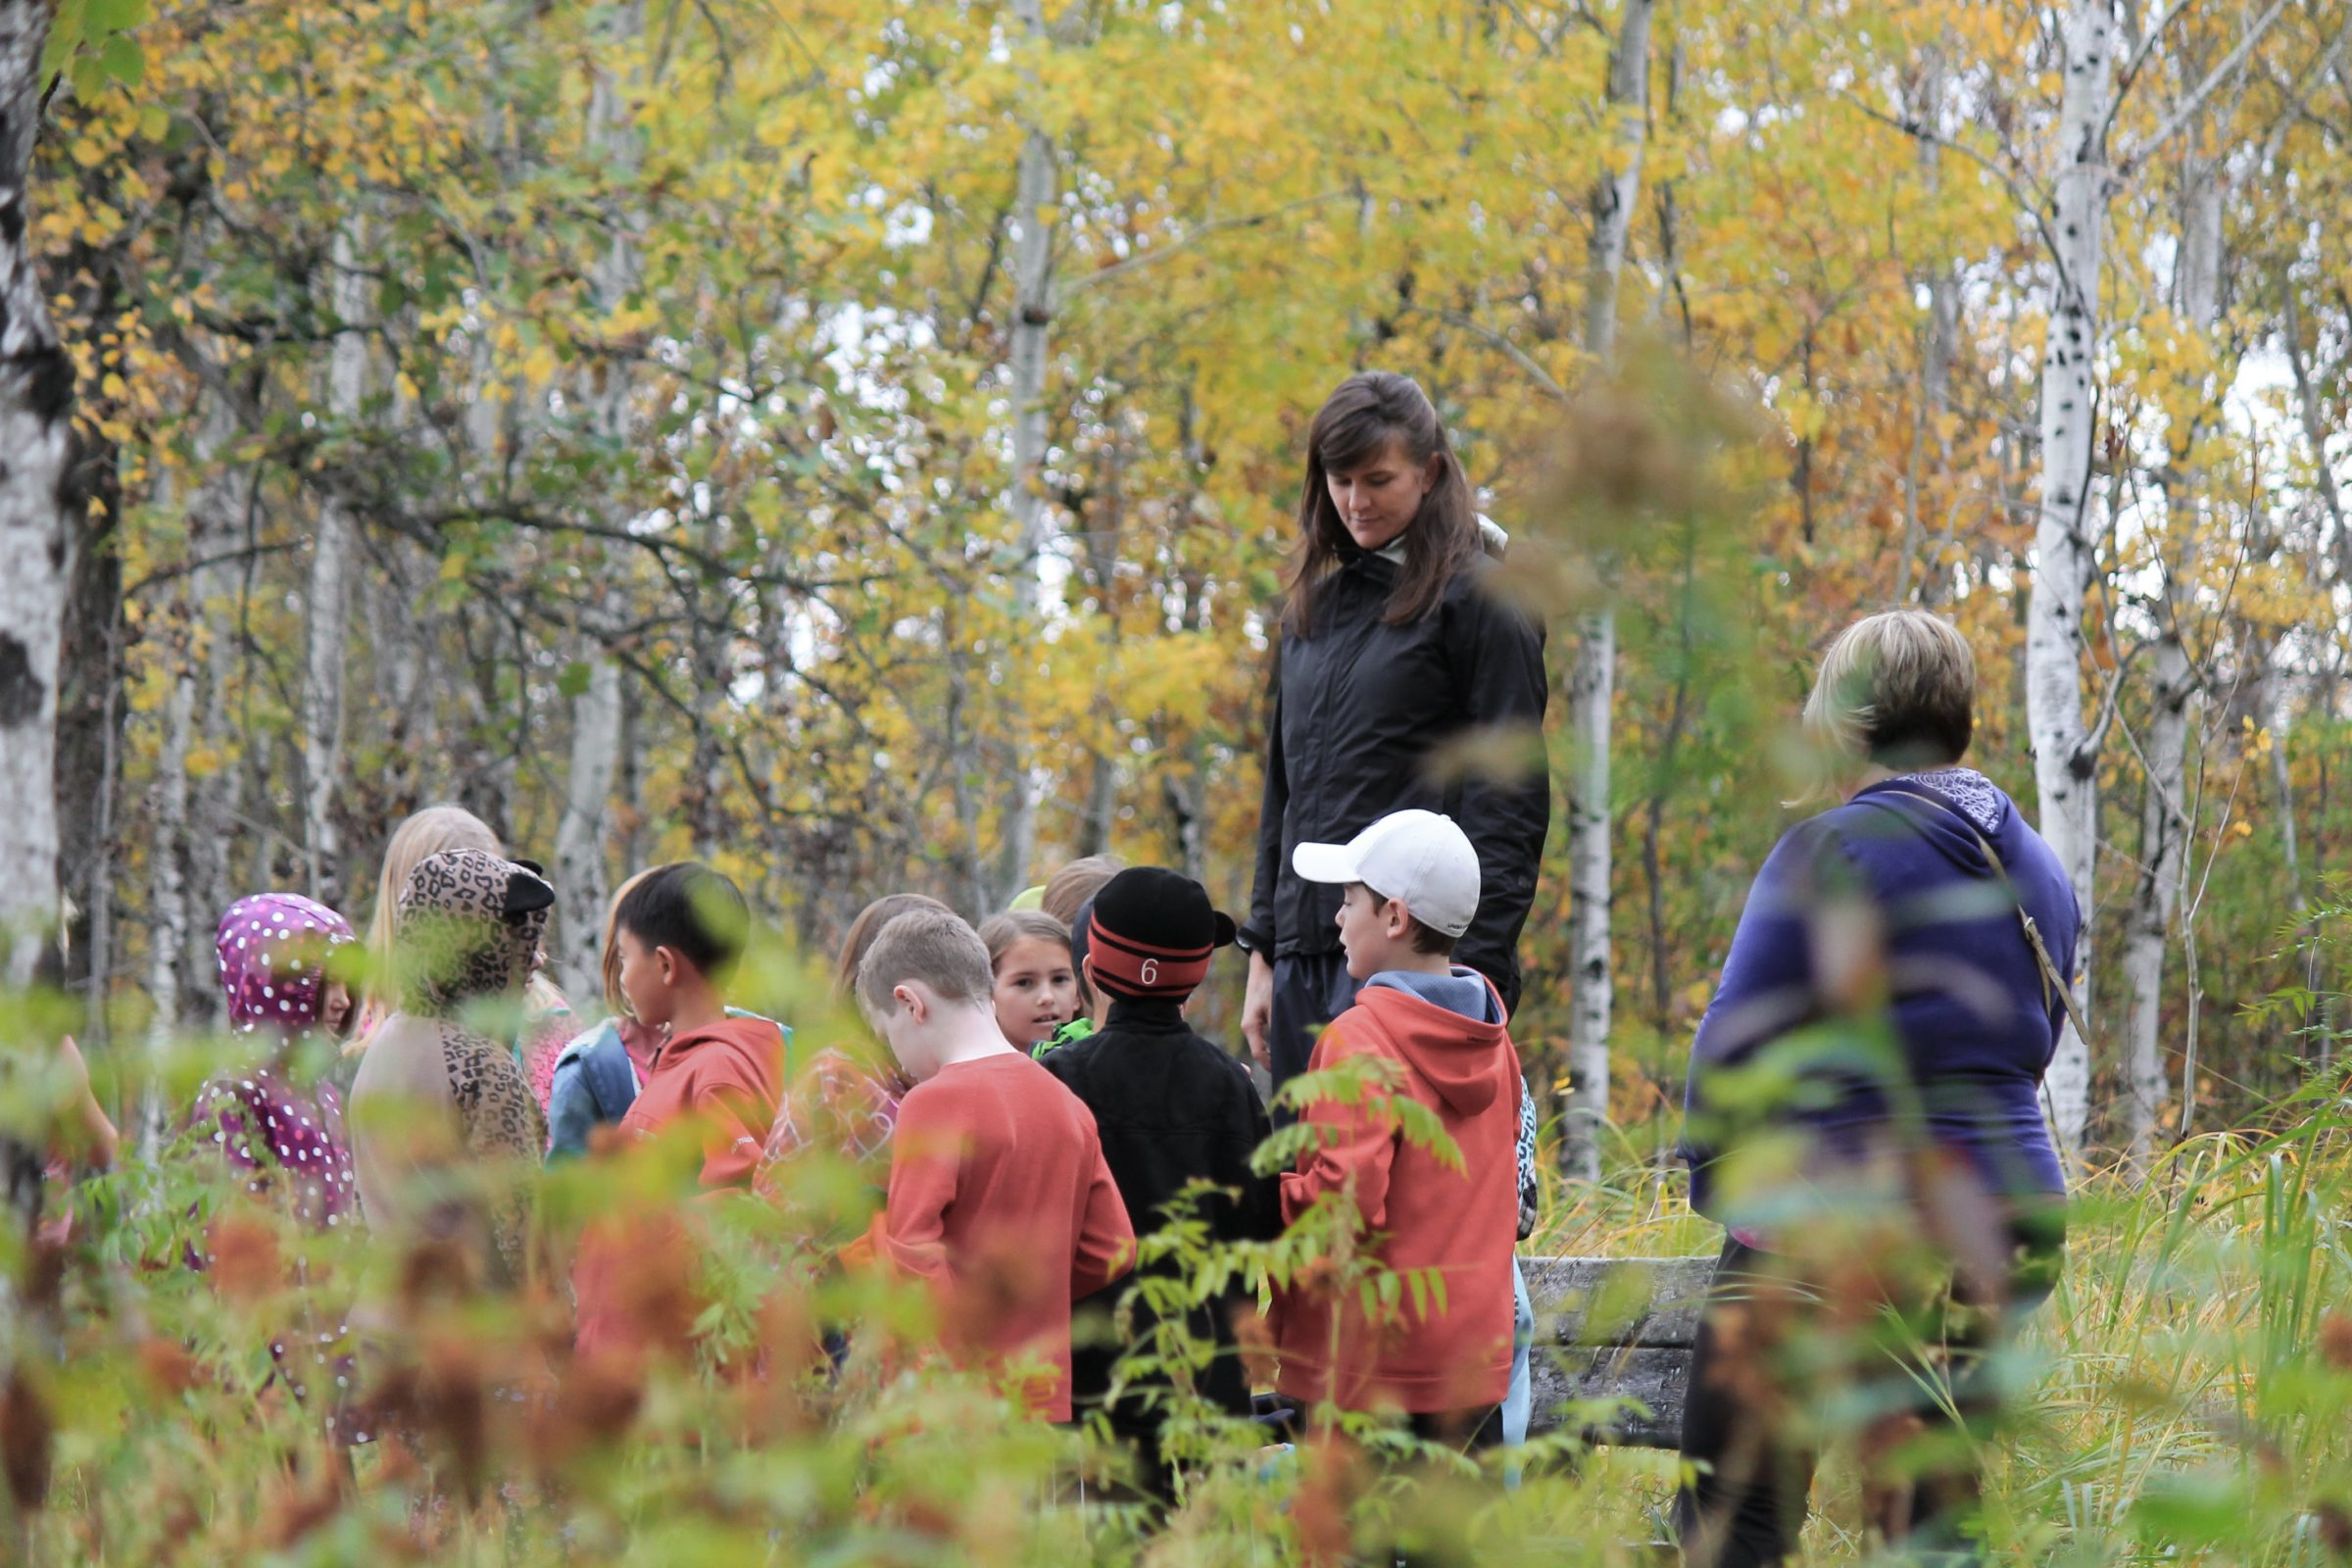 Forest School leader guiding group of children in autumn